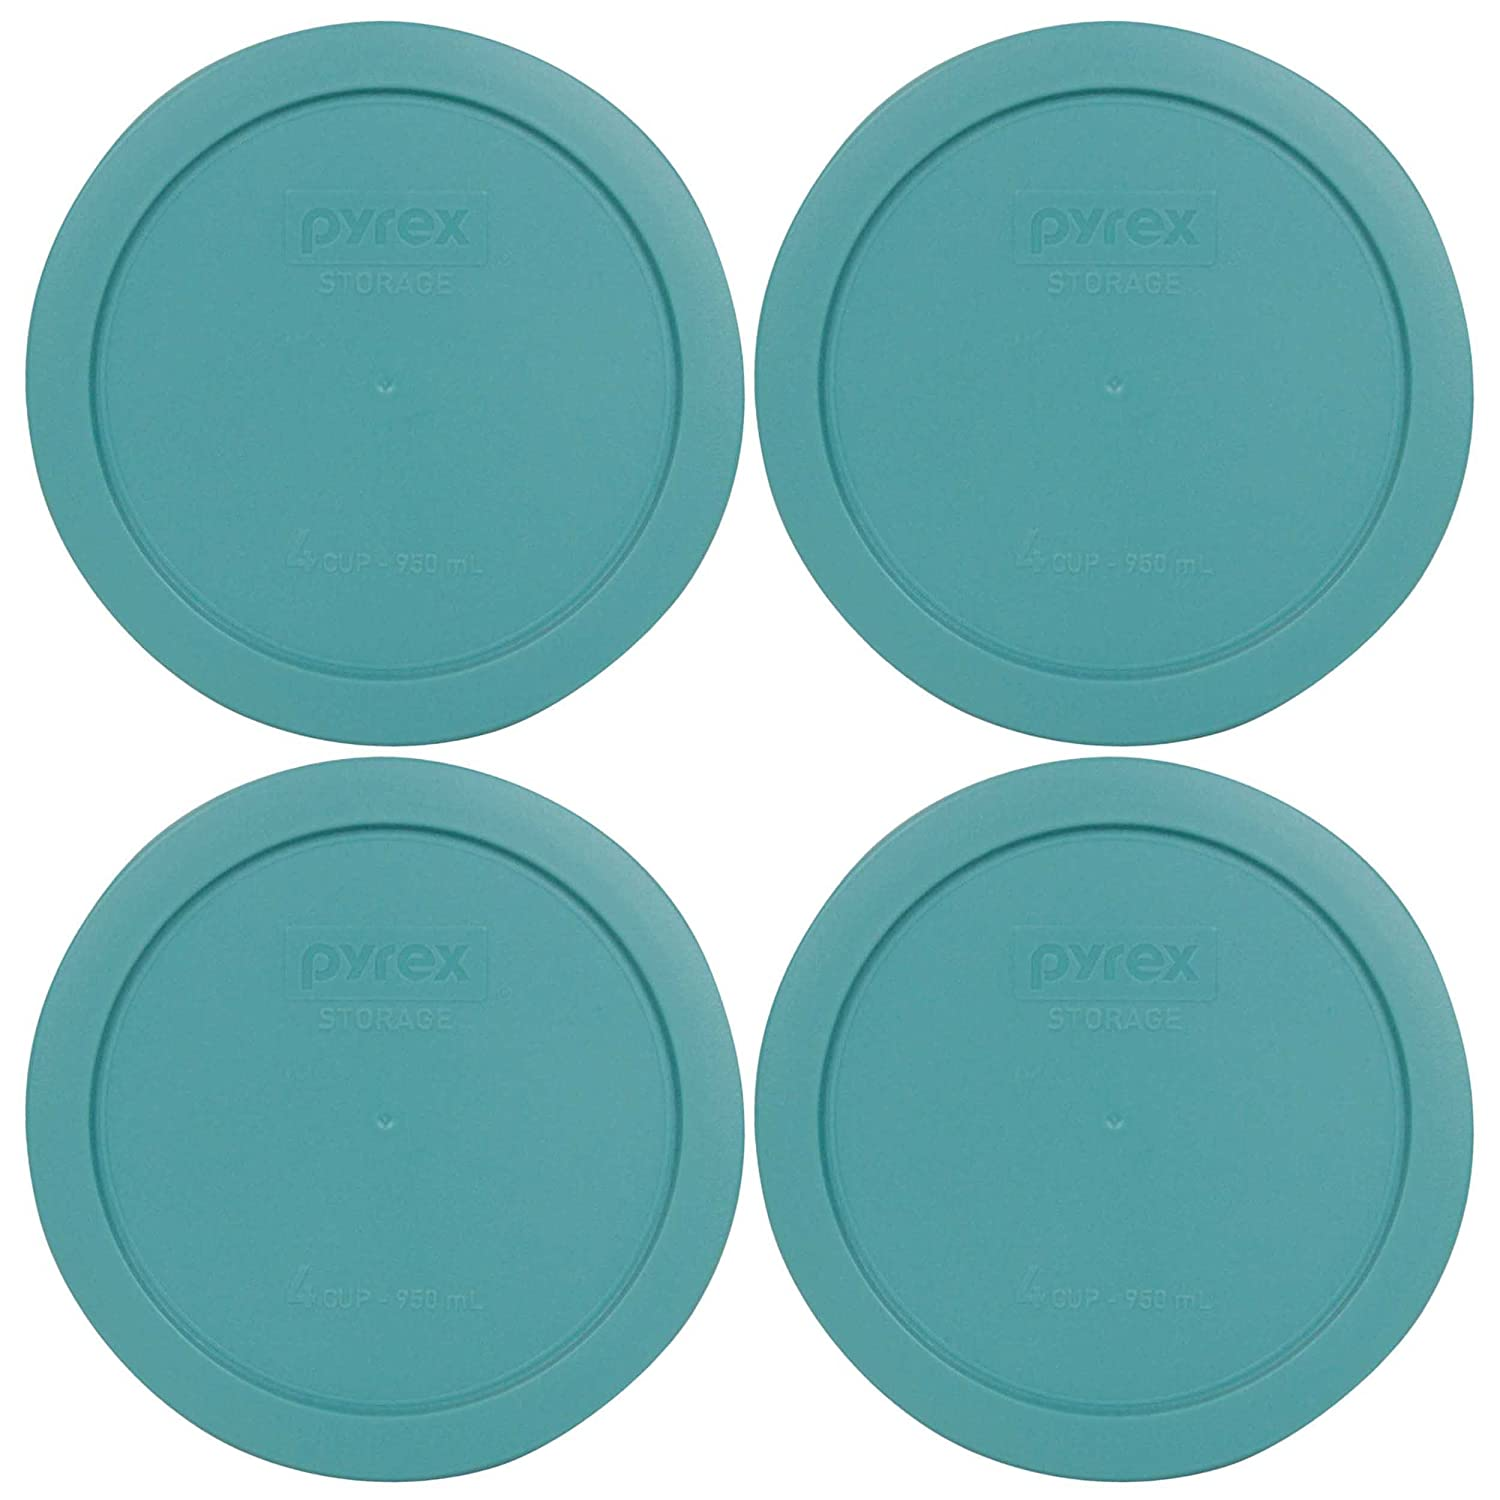 Pyrex 7201-PC Round 4 Cup Storage Lid for Glass Bowls (4, Turquoise)